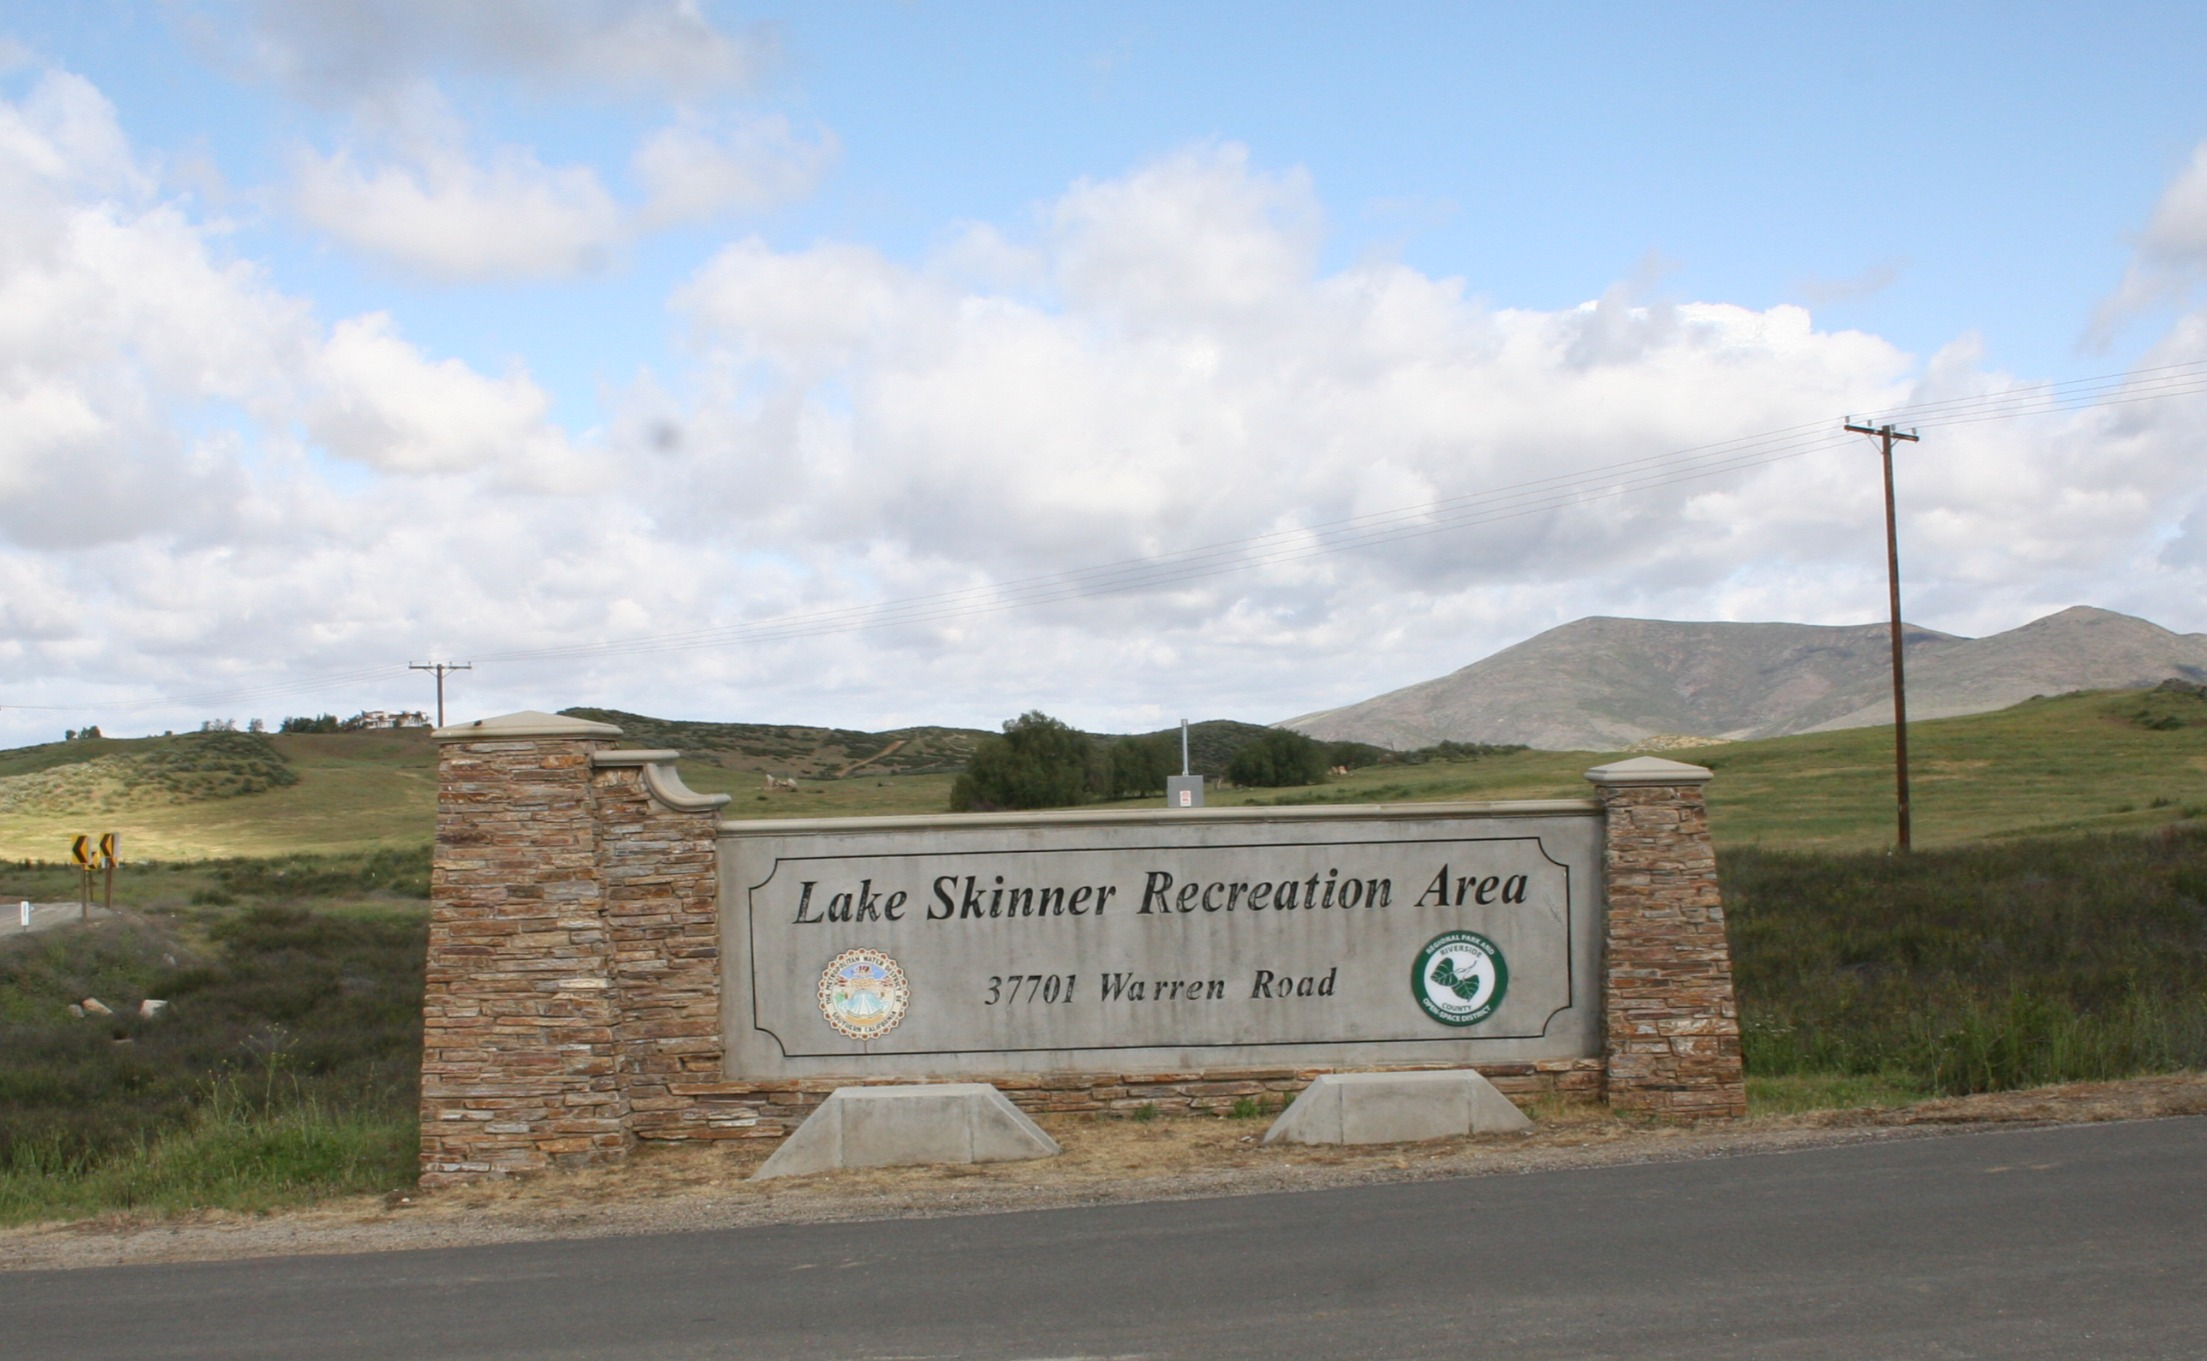 Welcome sign at Lake Skinner